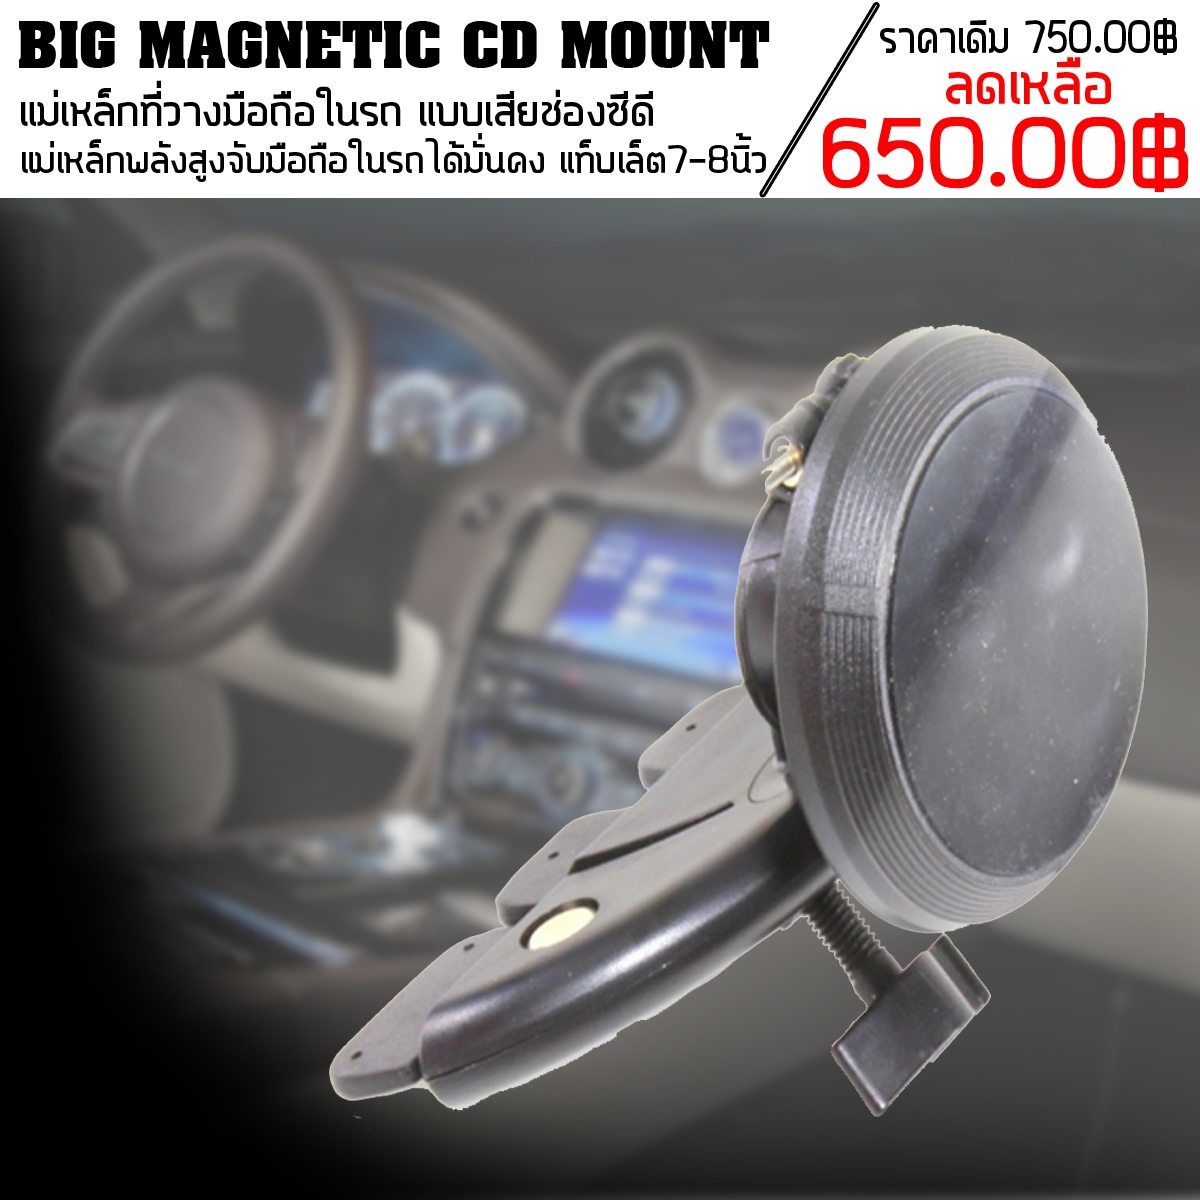 BIG MAGNETIC CD MOUNT